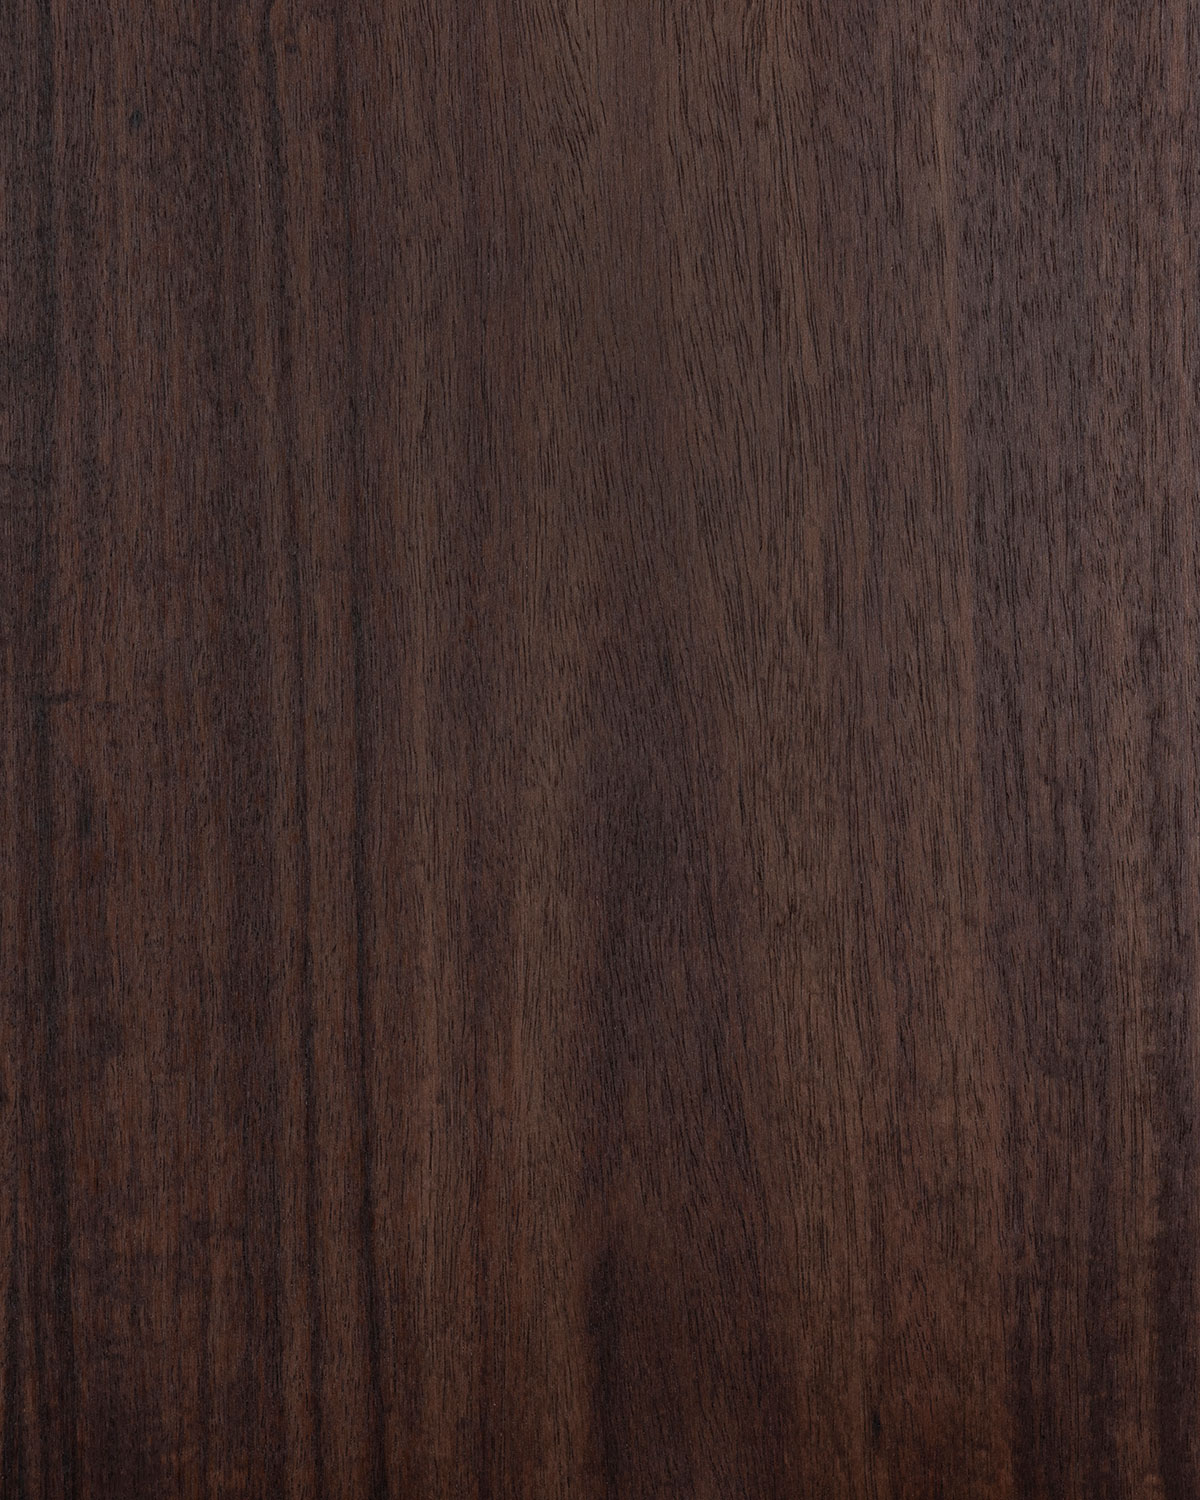 Rosewood, Mexican Flat Cut - Dark Stain